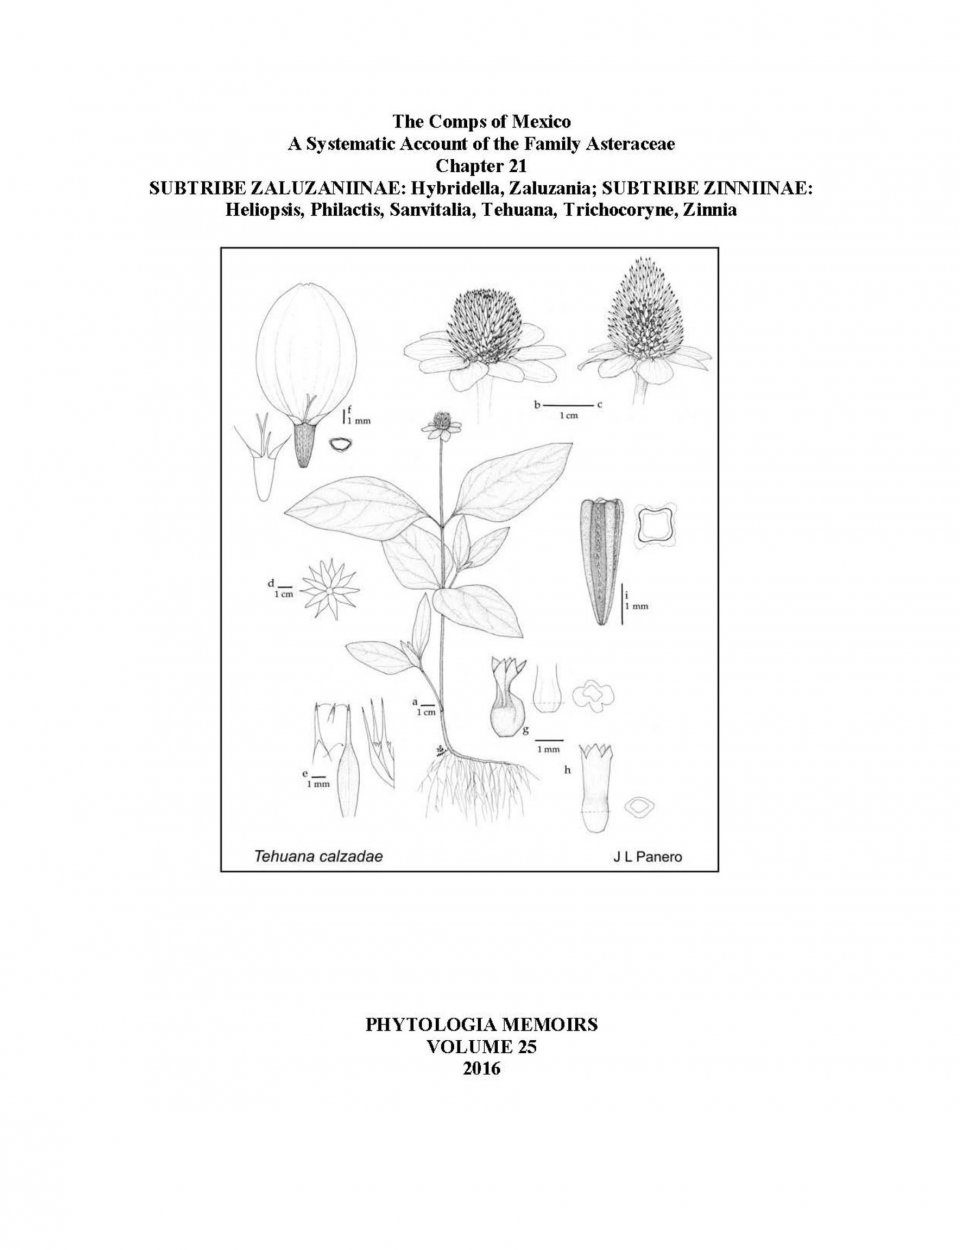 The Comps of Mexico: A Systematic Account of the Family Asteraceae, Chapter 21